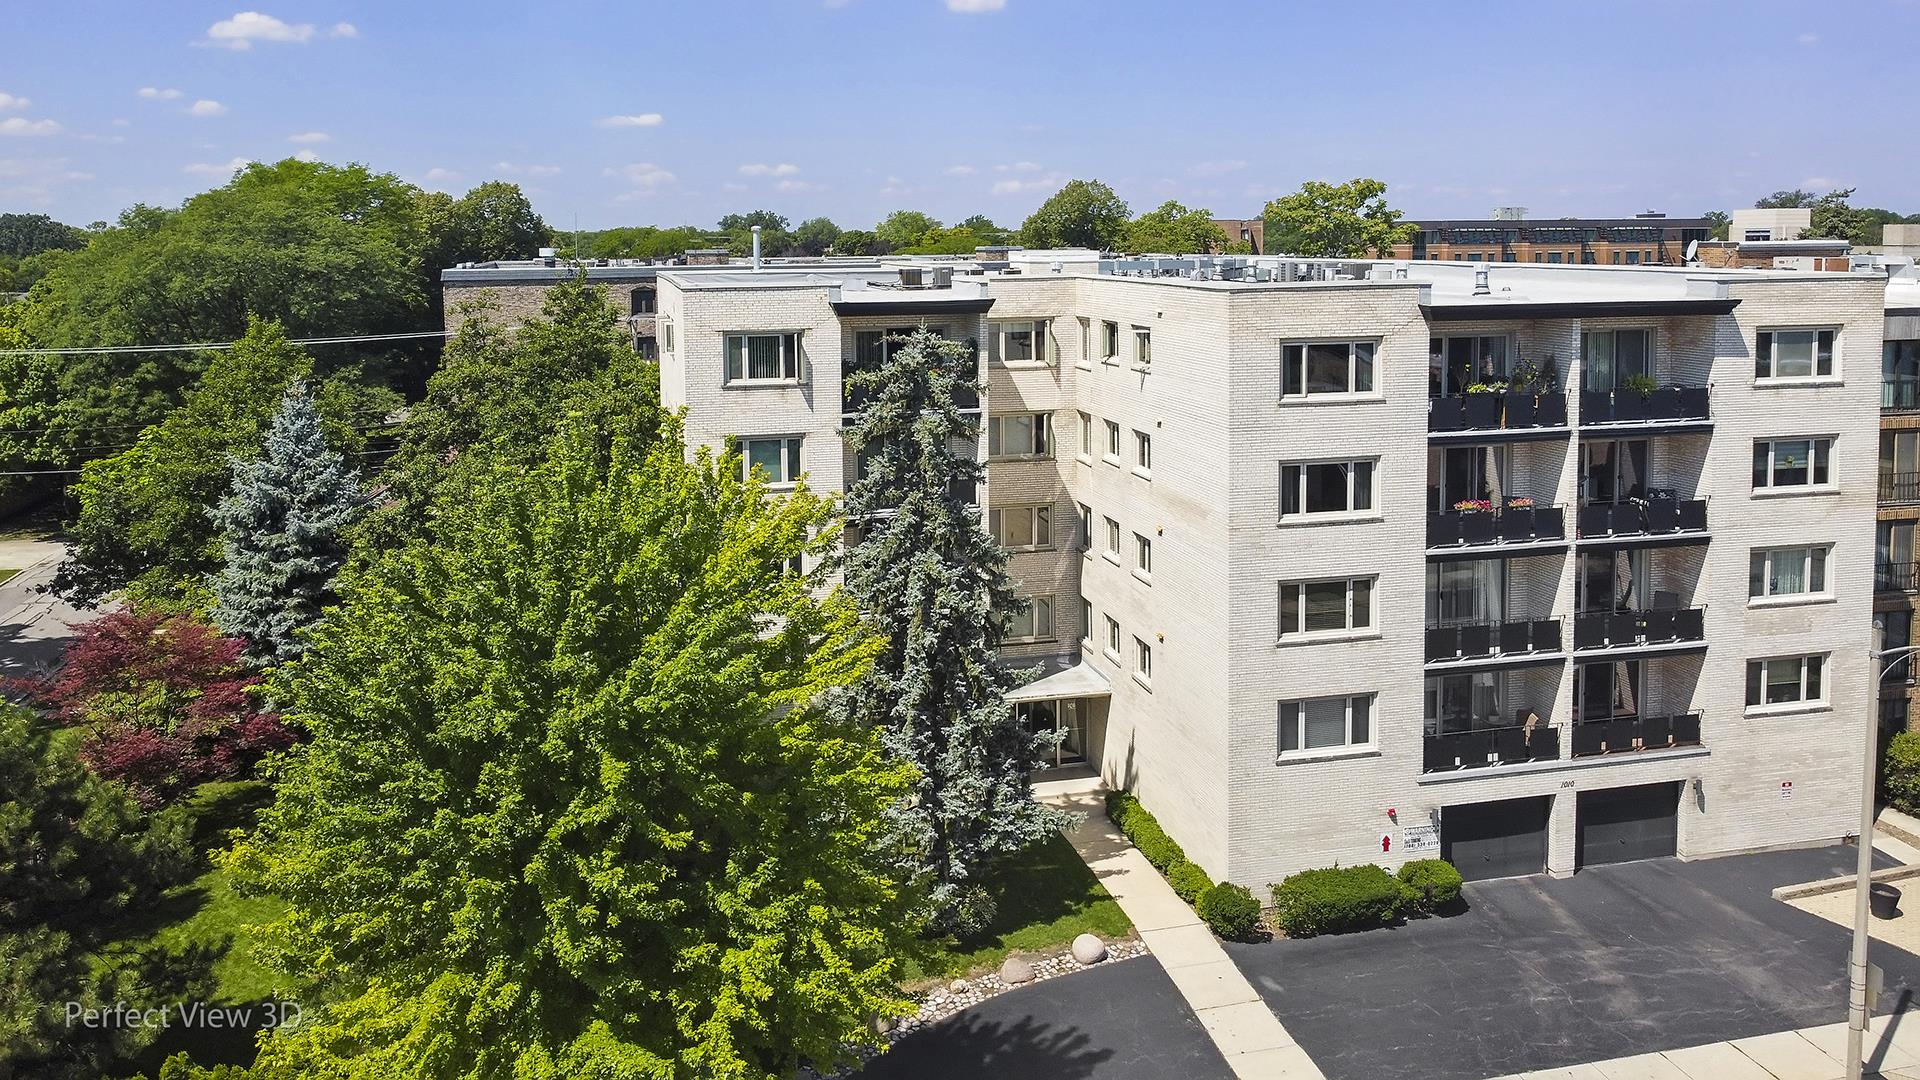 1010 N Harlem Avenue #201, River Forest, IL 60305 - #: 10812709